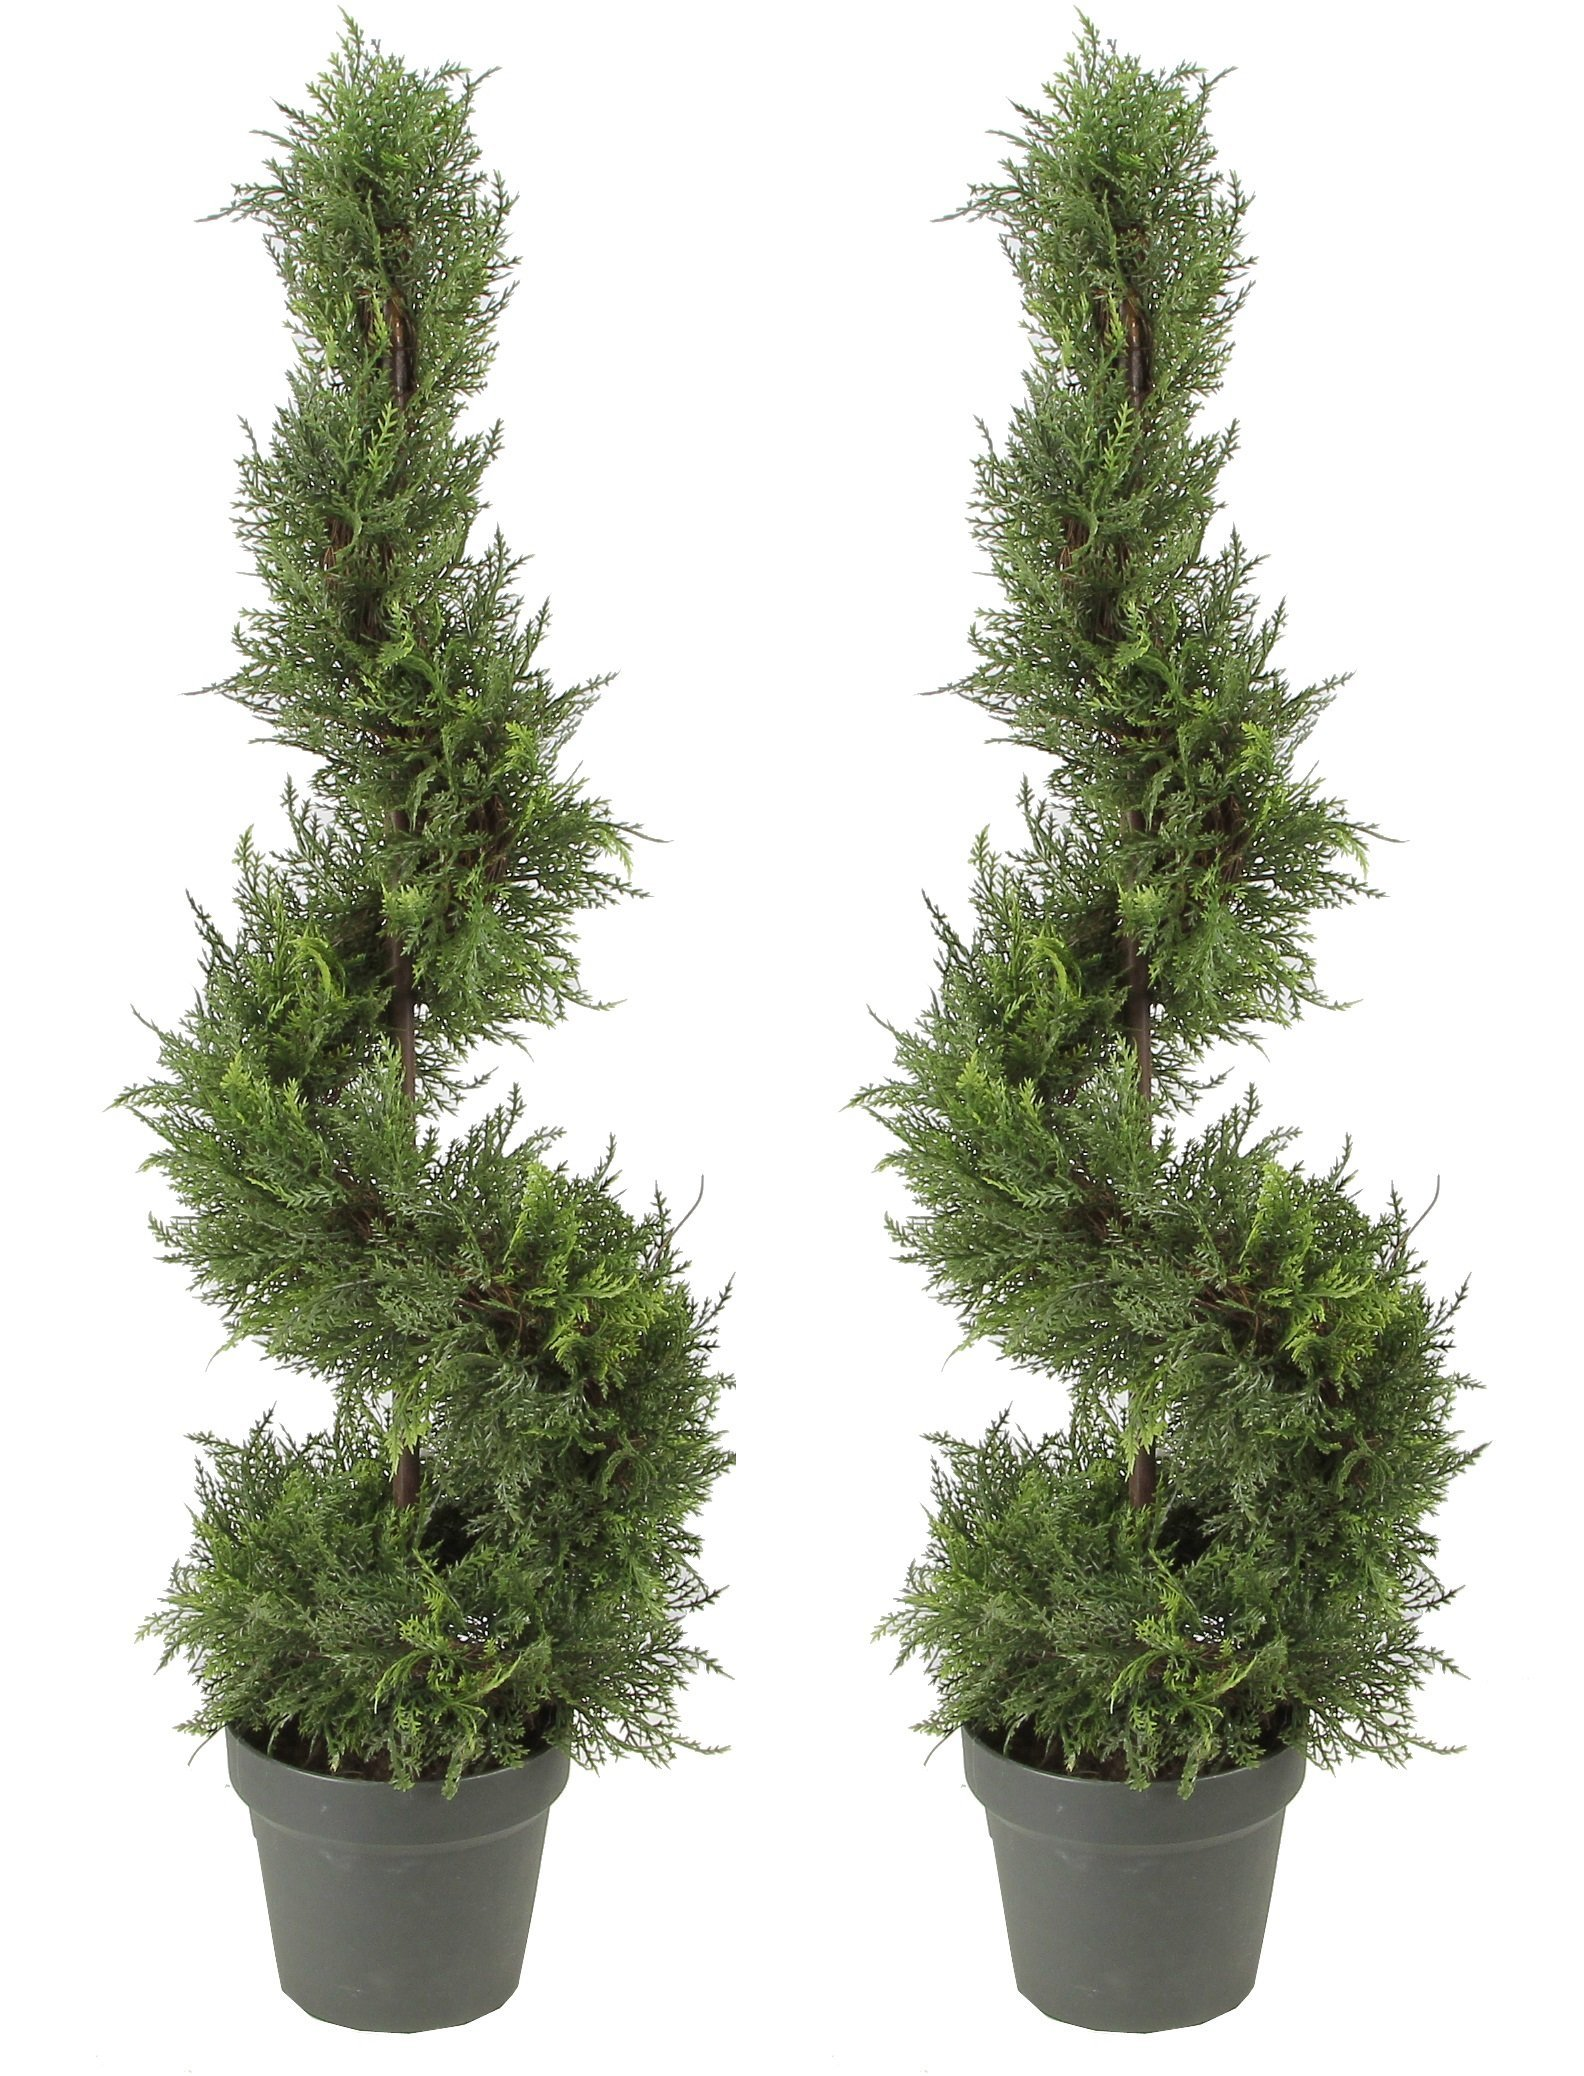 Admired by Nature 2 x 3' Artificial Cypress Leave Spiral Topiary Plant Tree in Plastic Pot, Green